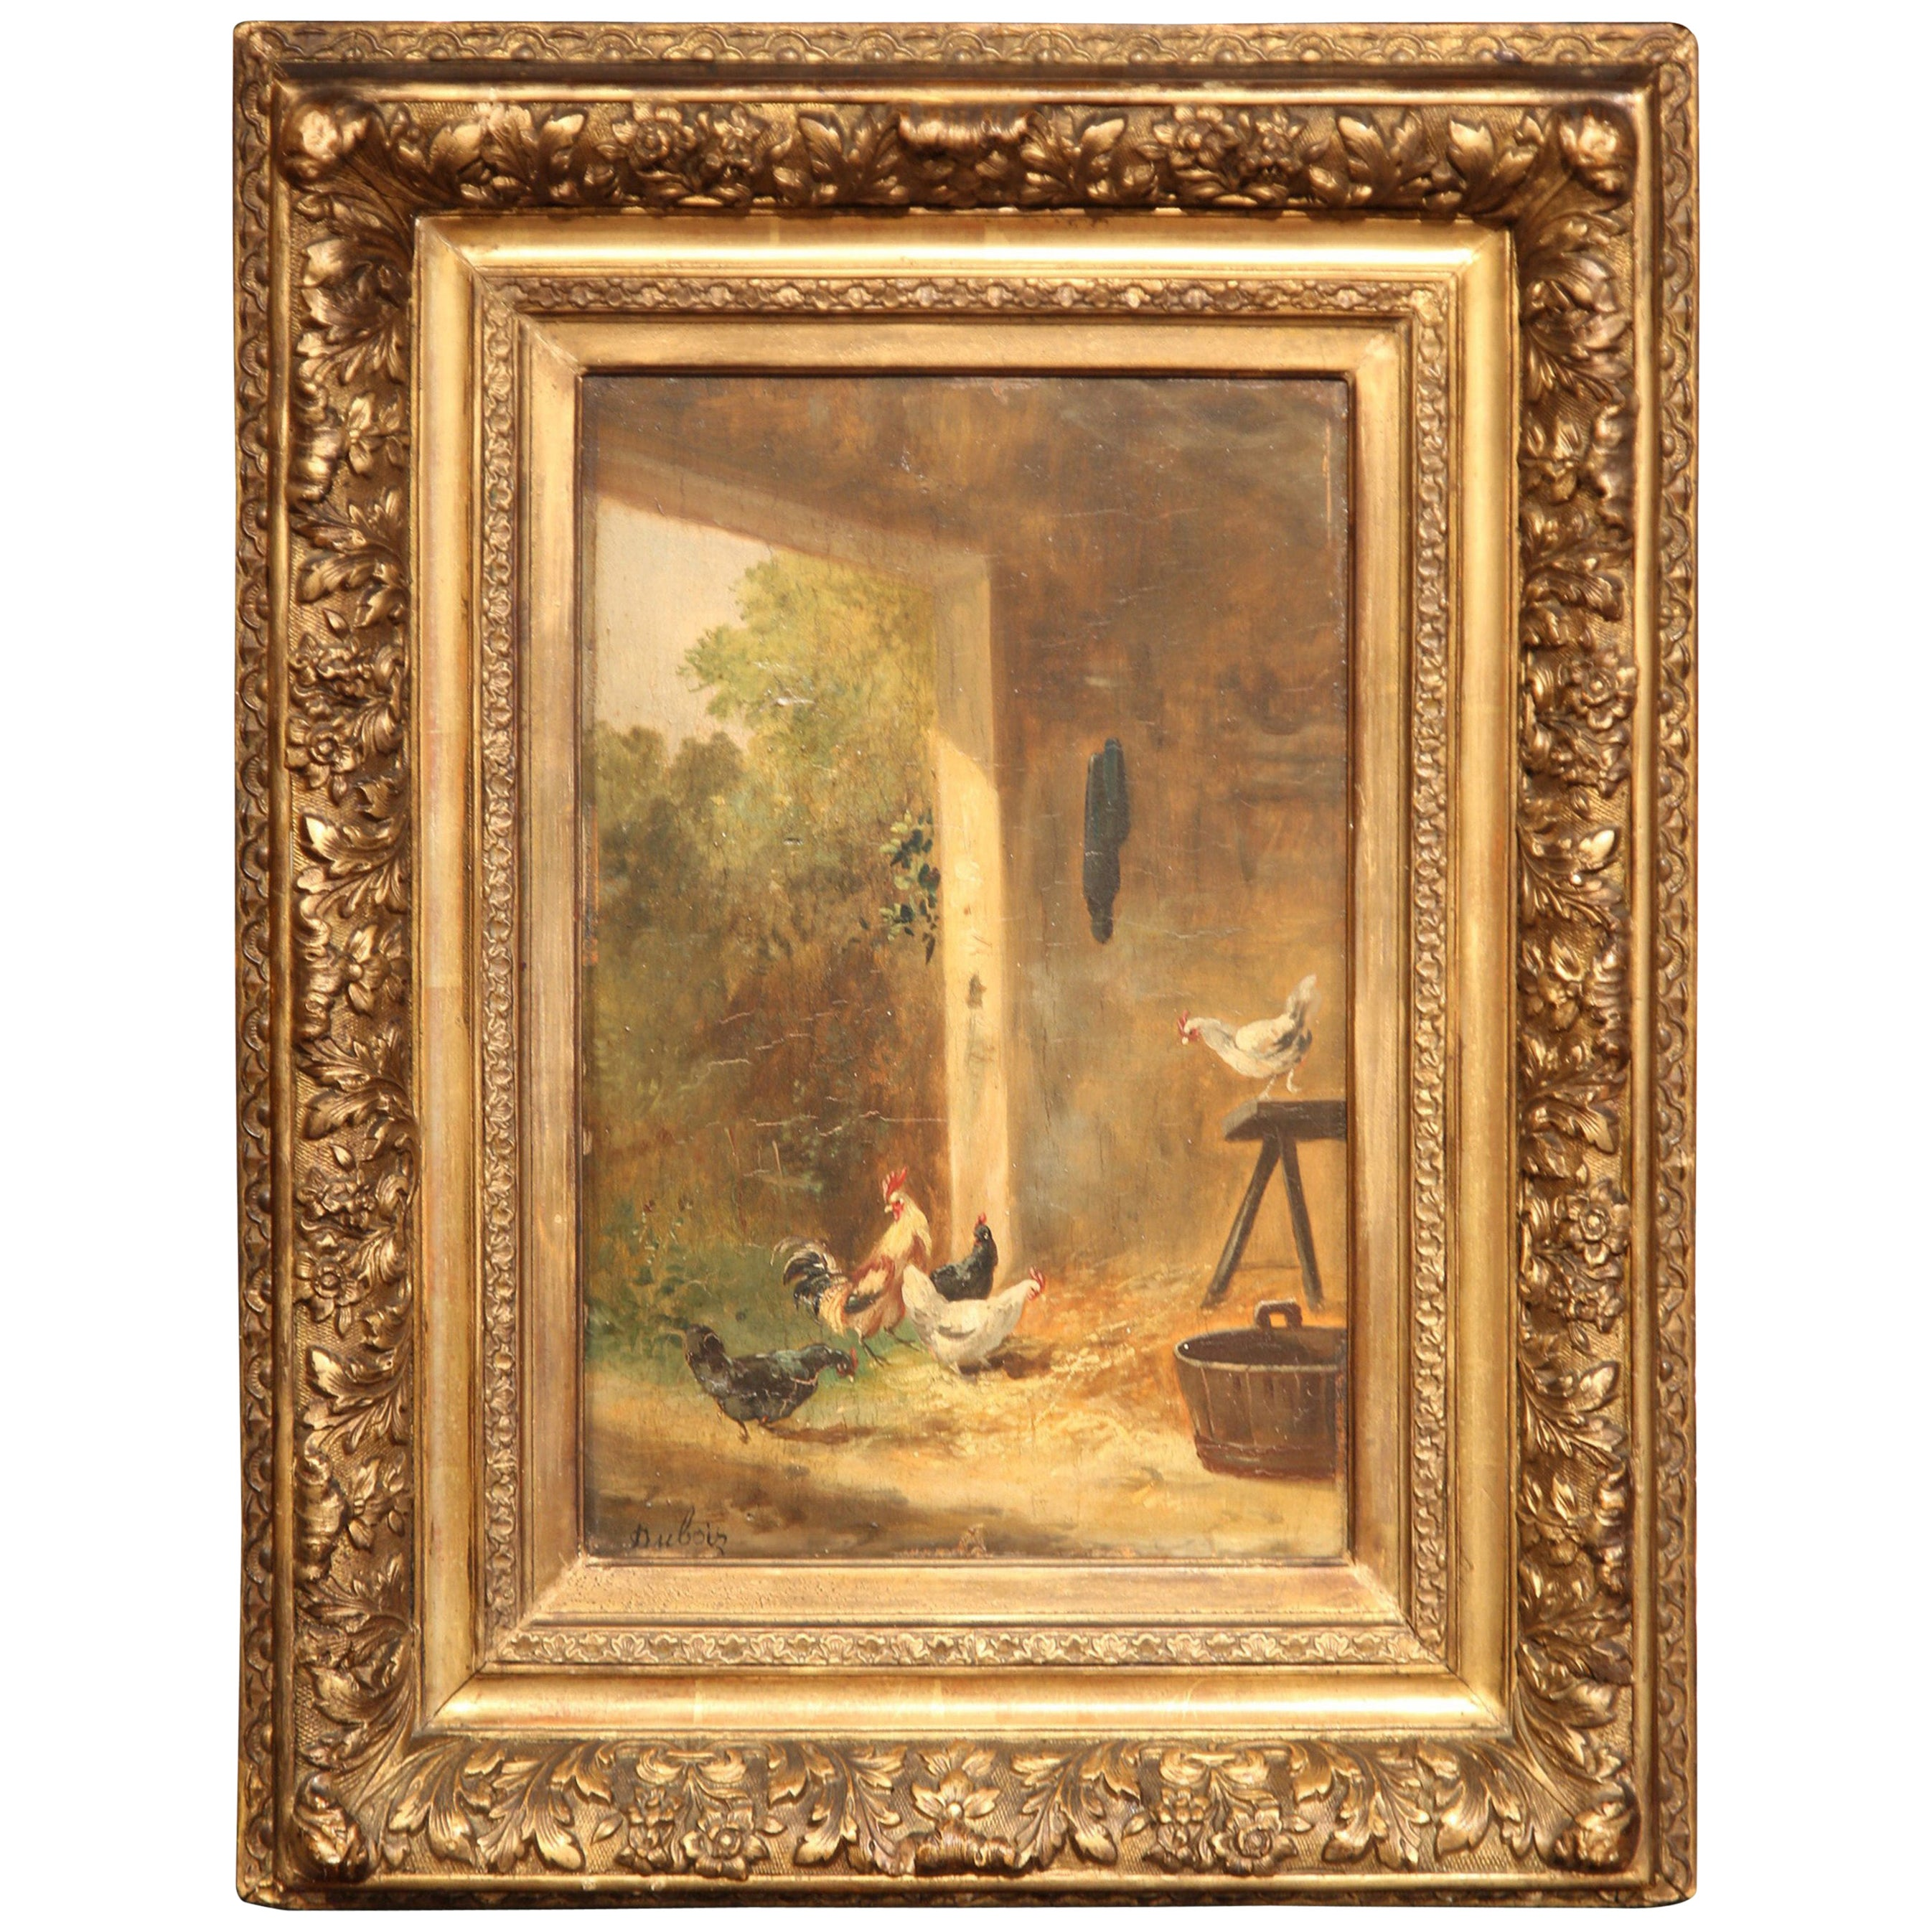 19th Century French Chicken Painting in Carved Gilt Frame Signed Dubois